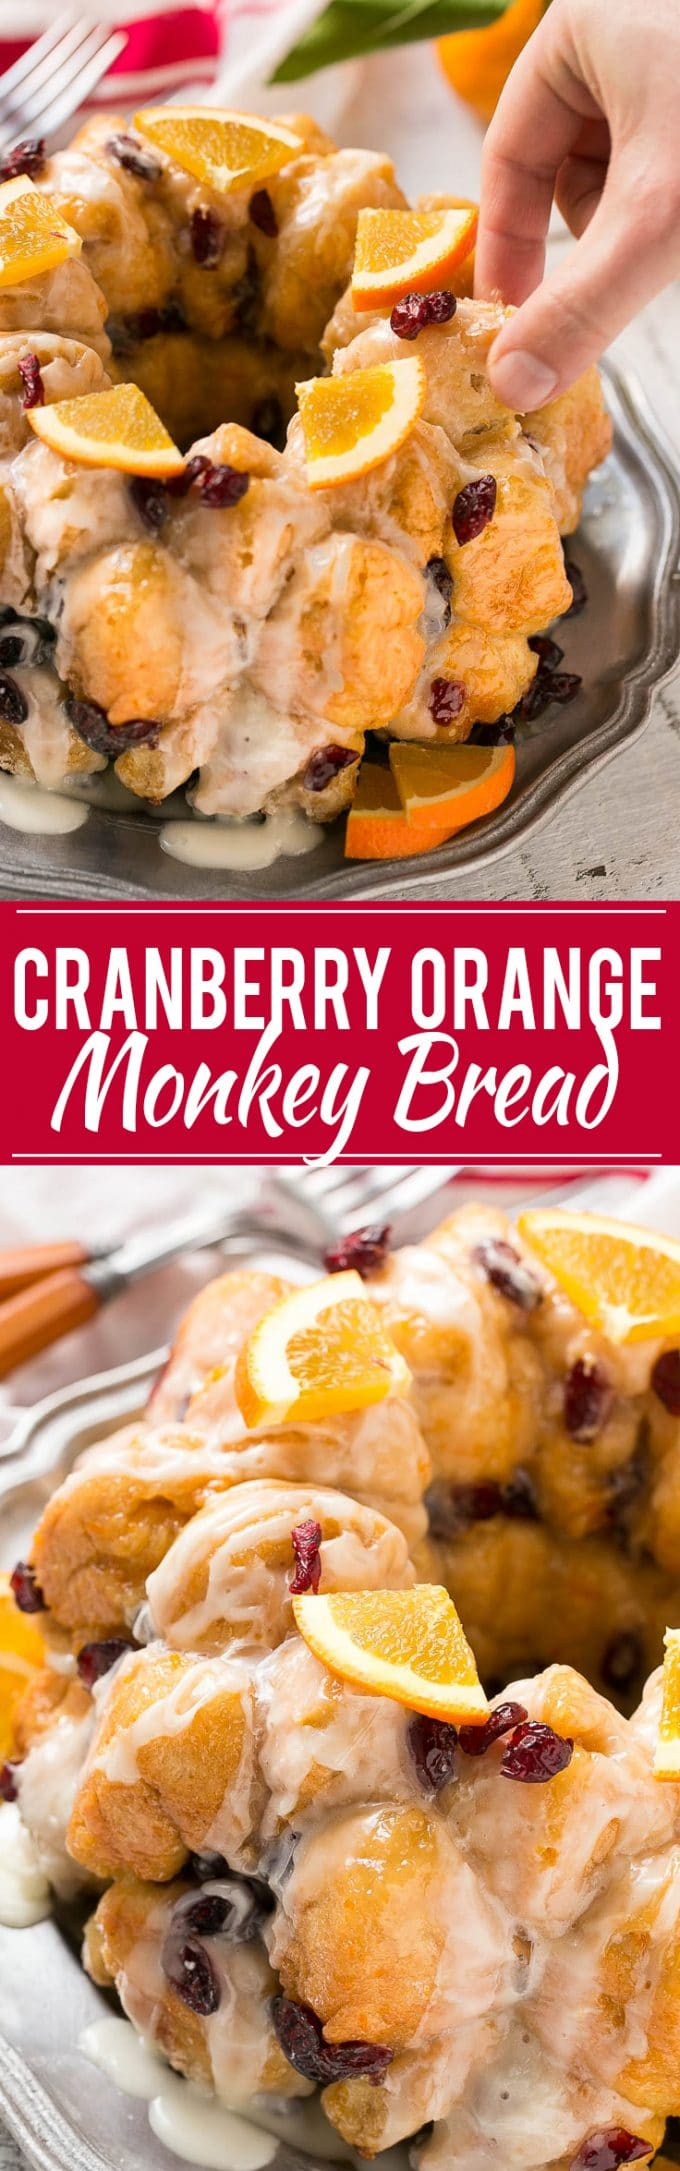 Cranberry Orange Pull Apart Monkey Bread Recipe| Cranberry Orange Monkey Bread | Easy Cranberry Orange Pull Apart Bread | Pull Apart Monkey Bread | Best Pull Apart Monkey Bread | Cranberry Orange Bread